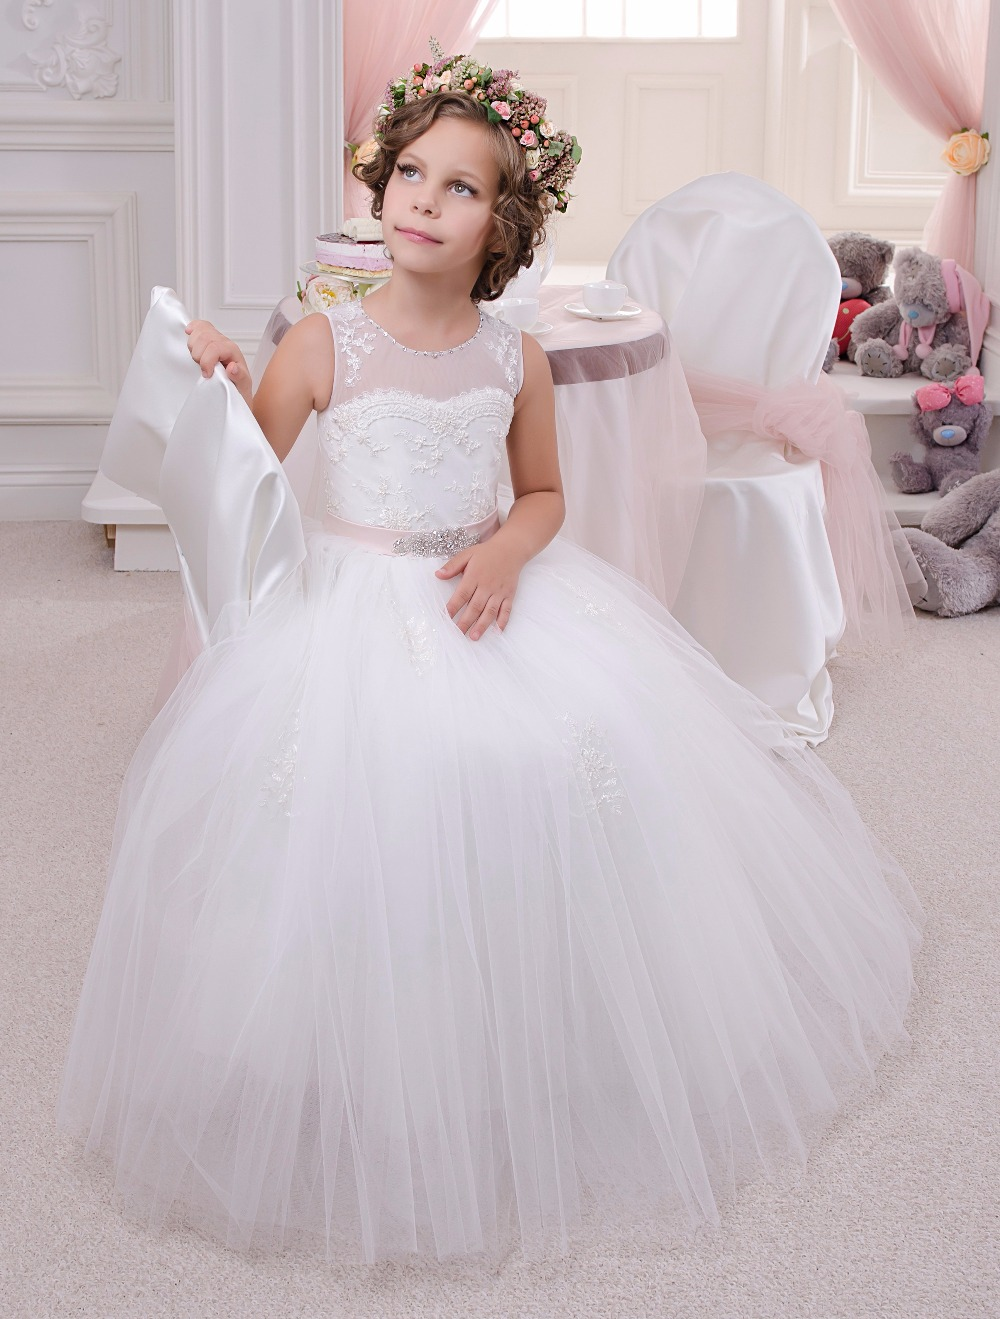 Beading Lace Appliques Sleeveless Ruffles Holy Communion Infant Girls Dresses Kids Prom Beading Tulle Ball Gowns 0-12 Year комлев и ковыль